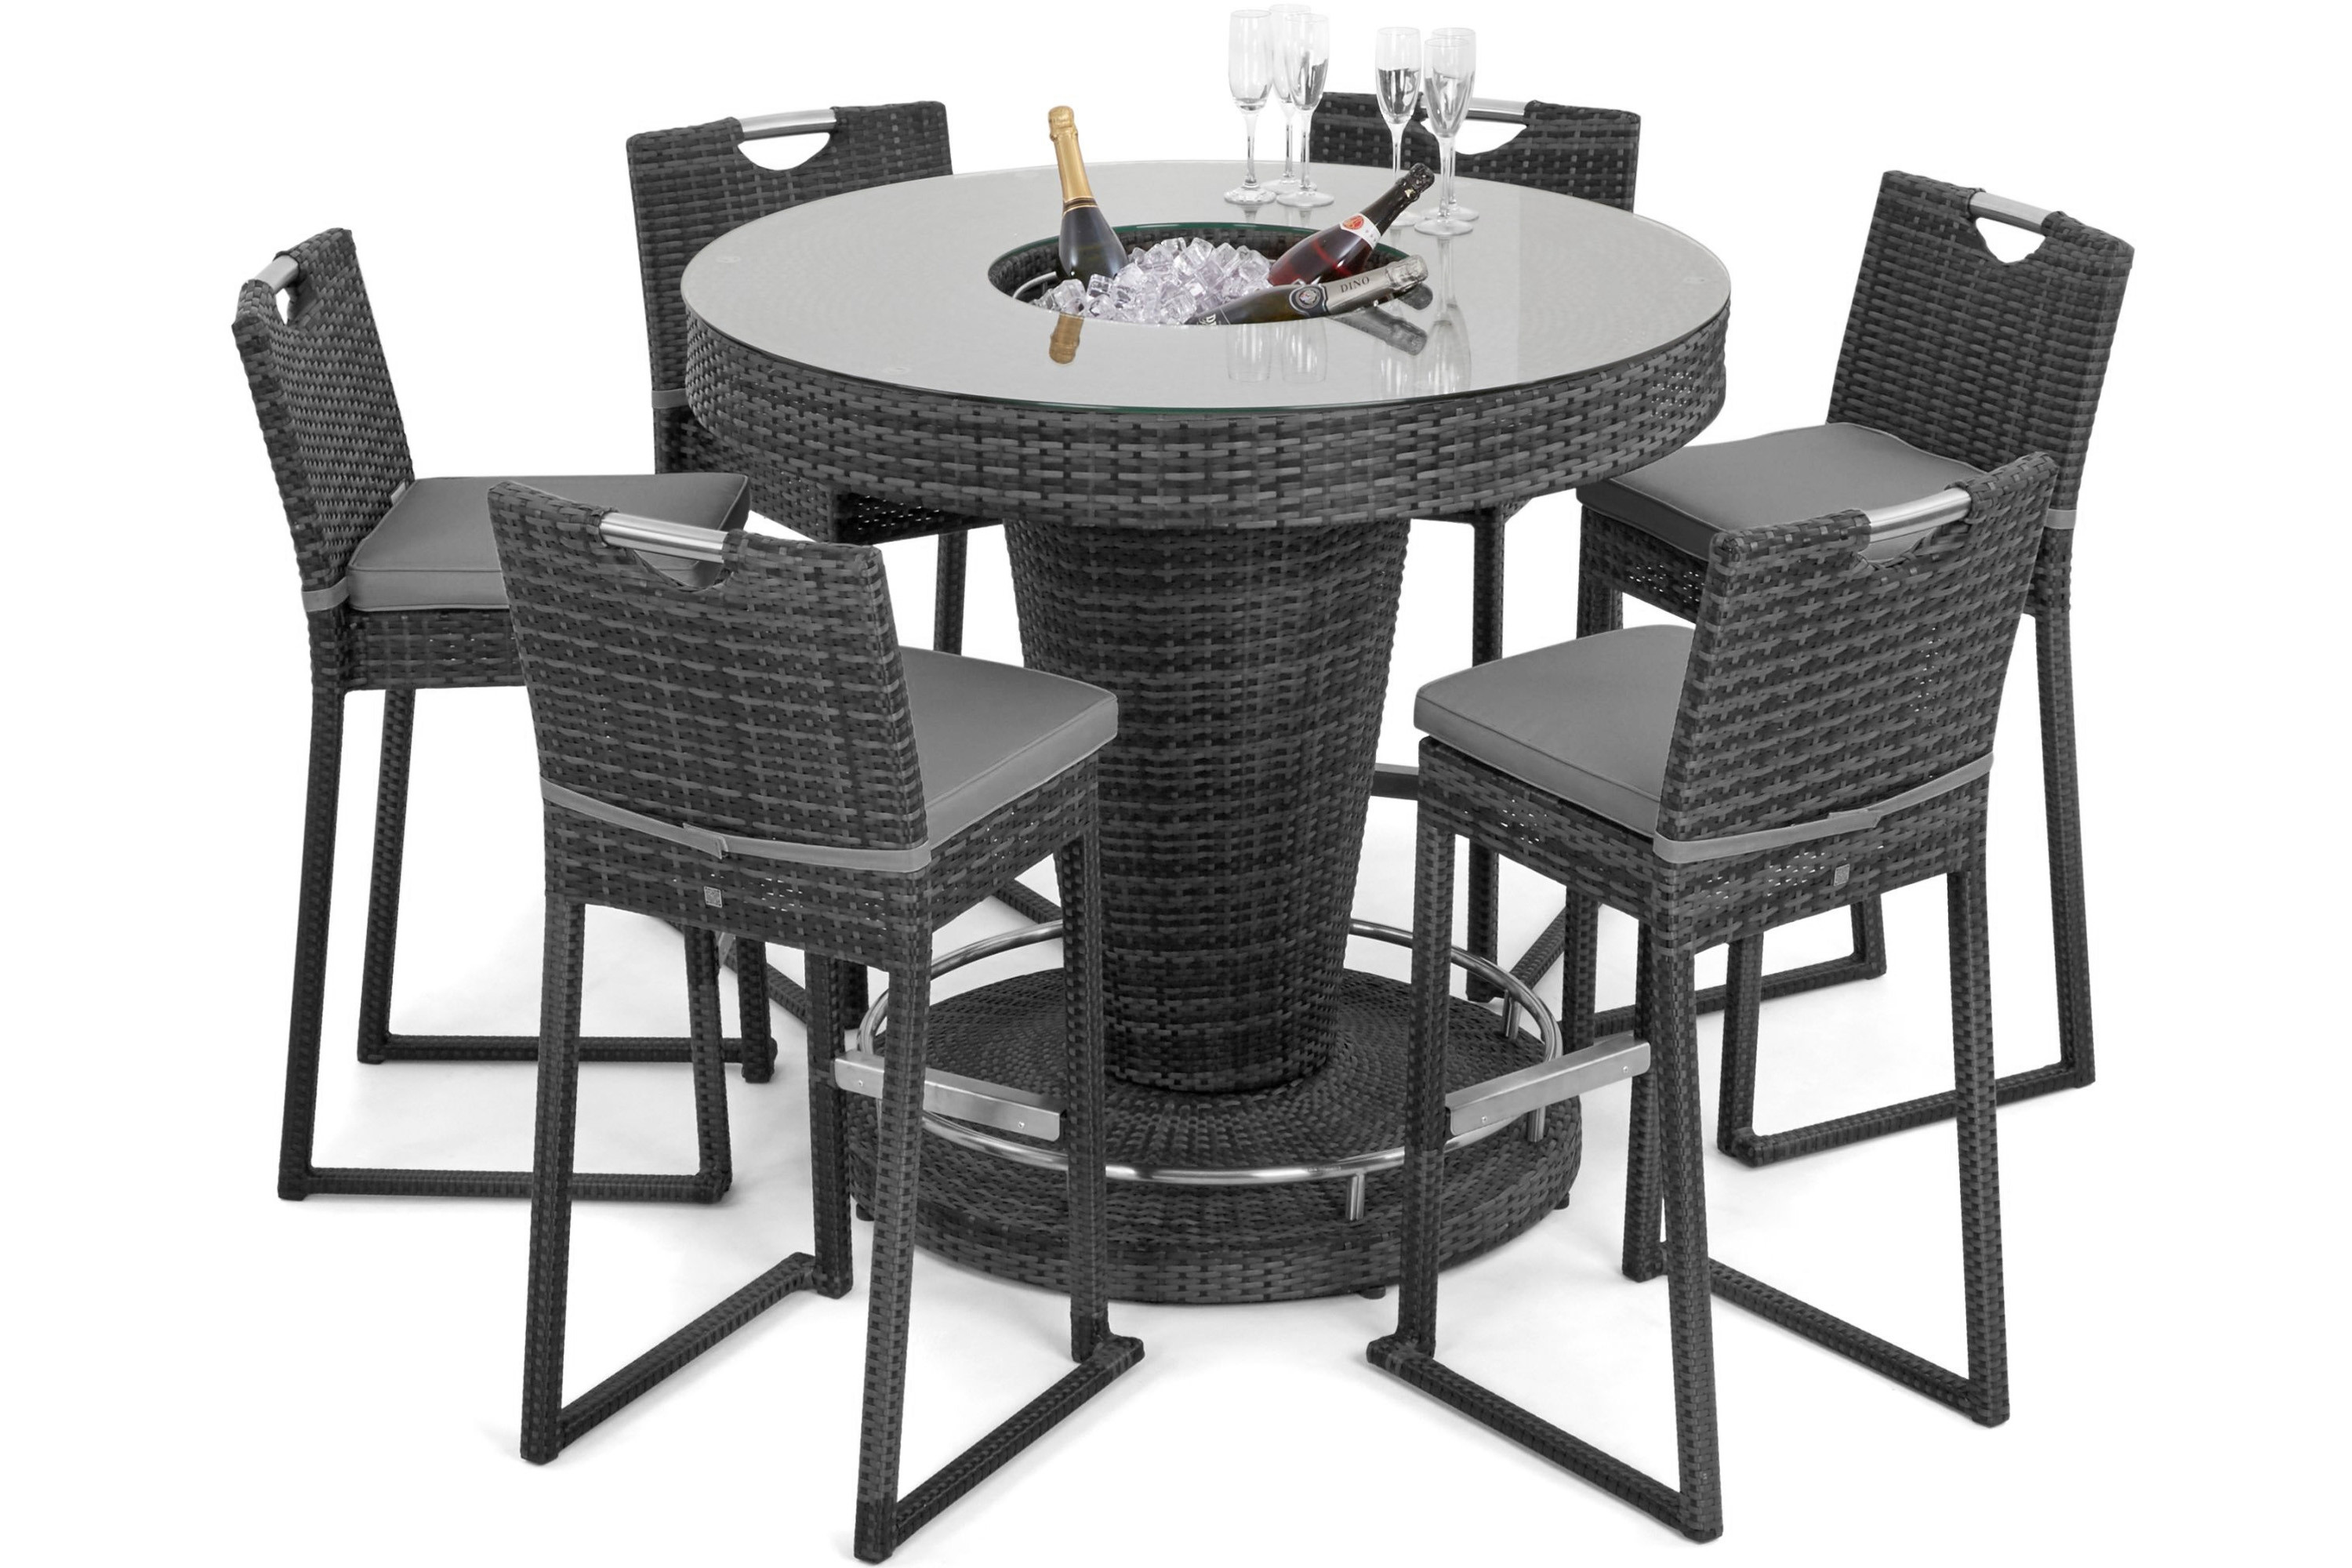 Rattan 6 Seat Bar Set With Ice Bucket Feature (Grey) *BRAND NEW* - Image 2 of 2